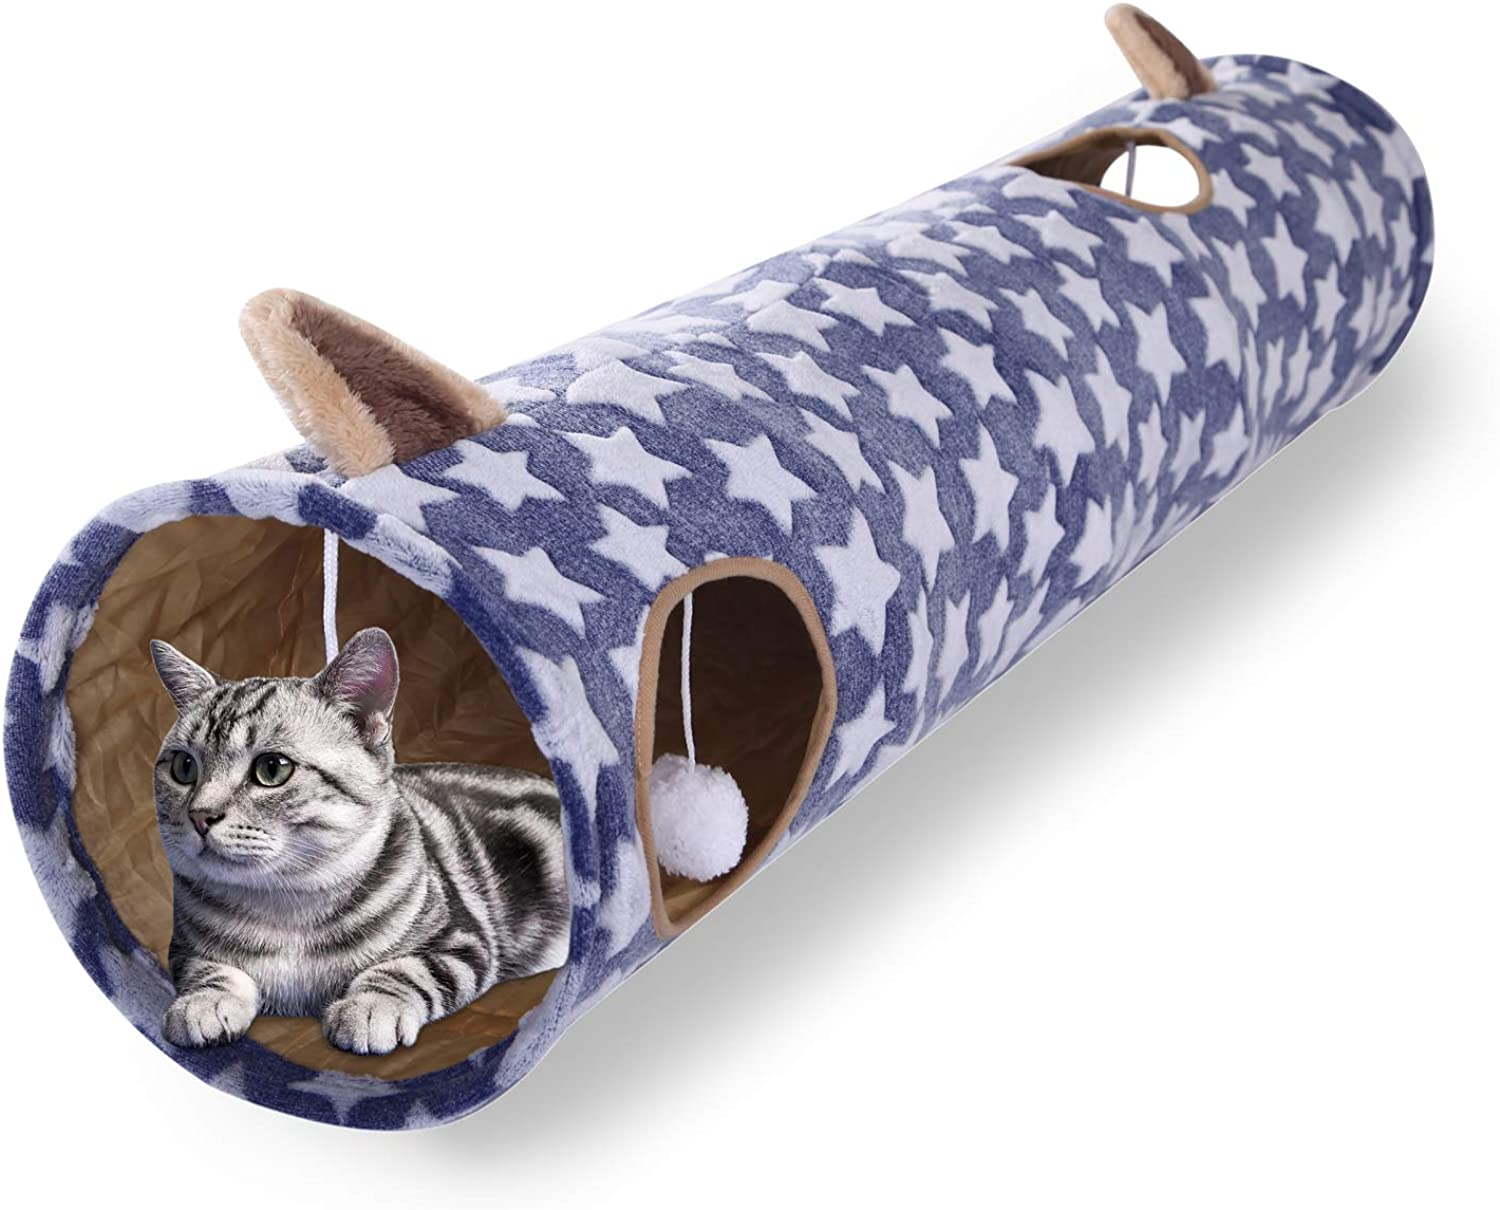 Luckitty Large Cat Toys Collapsible Tunnel Tube with Plush Balls for Rabbits, Kittens, Ferrets,Puppy and Dogs,Navy,bluee